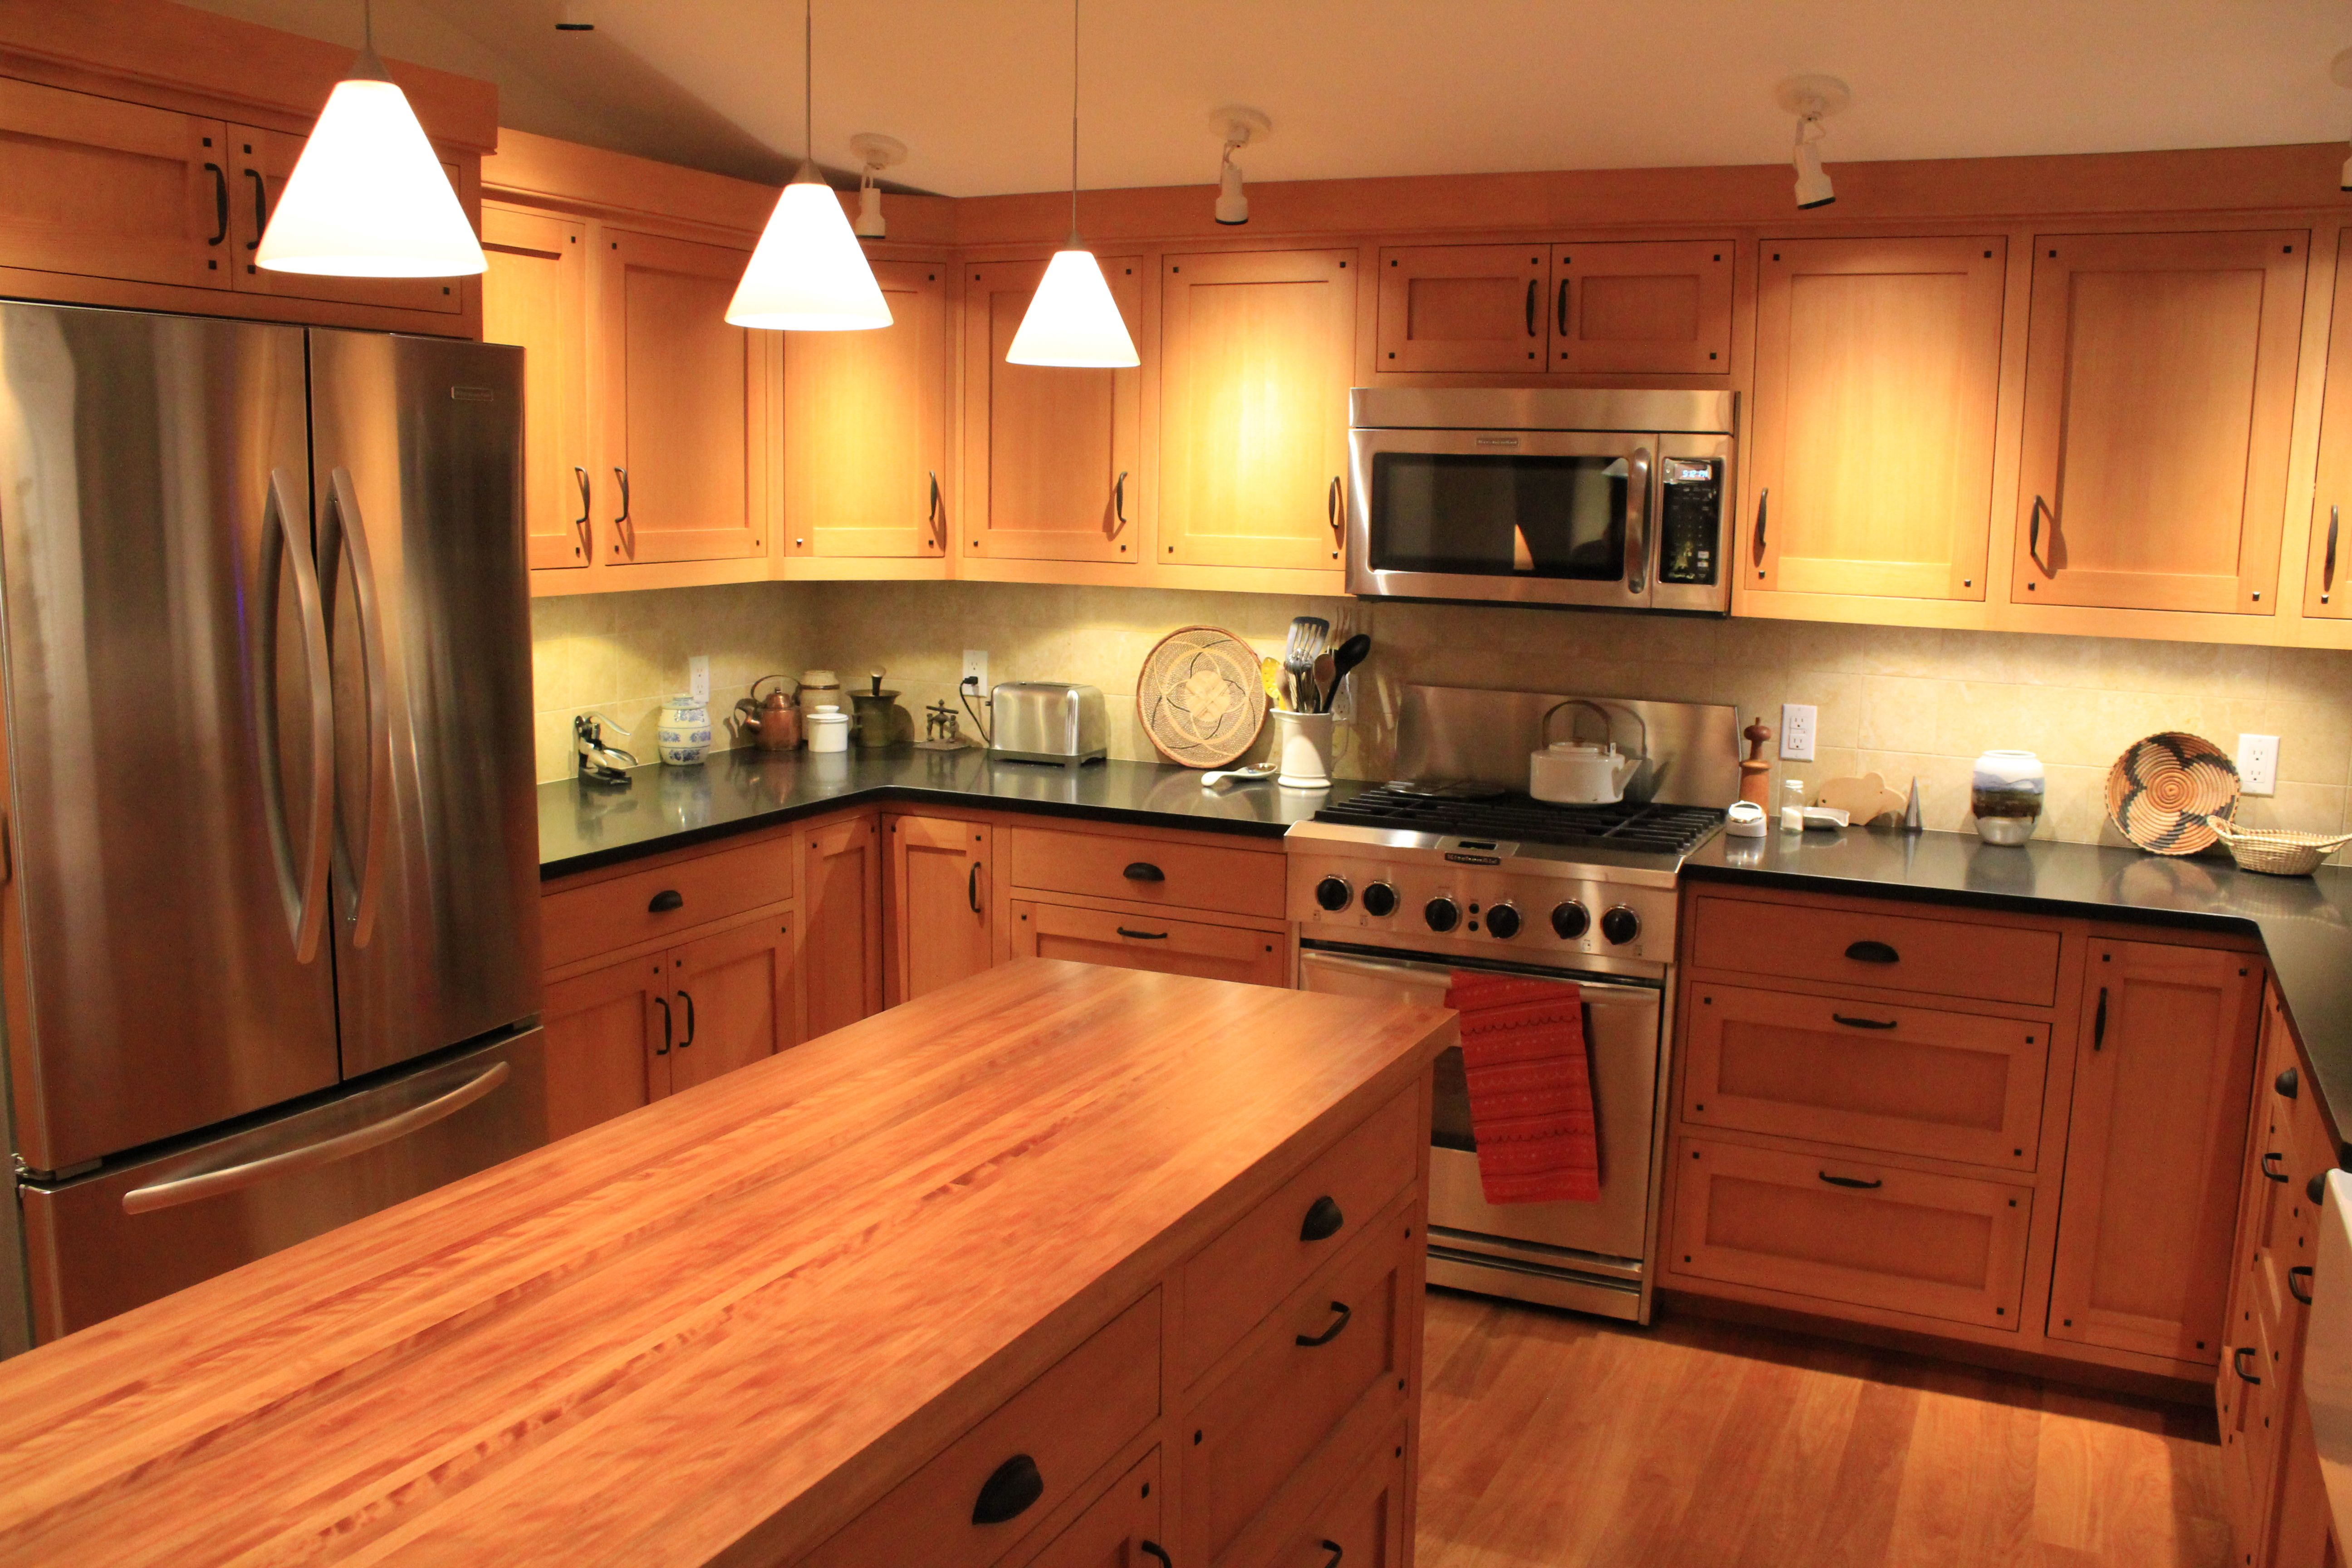 Custom Cabinetry Built By Blue Spruce Joinery Fir With Ebony Pegs Our Cabinetry Is A Kitchen Cabinet Styles Kitchen Craft Cabinets Beautiful Kitchen Cabinets